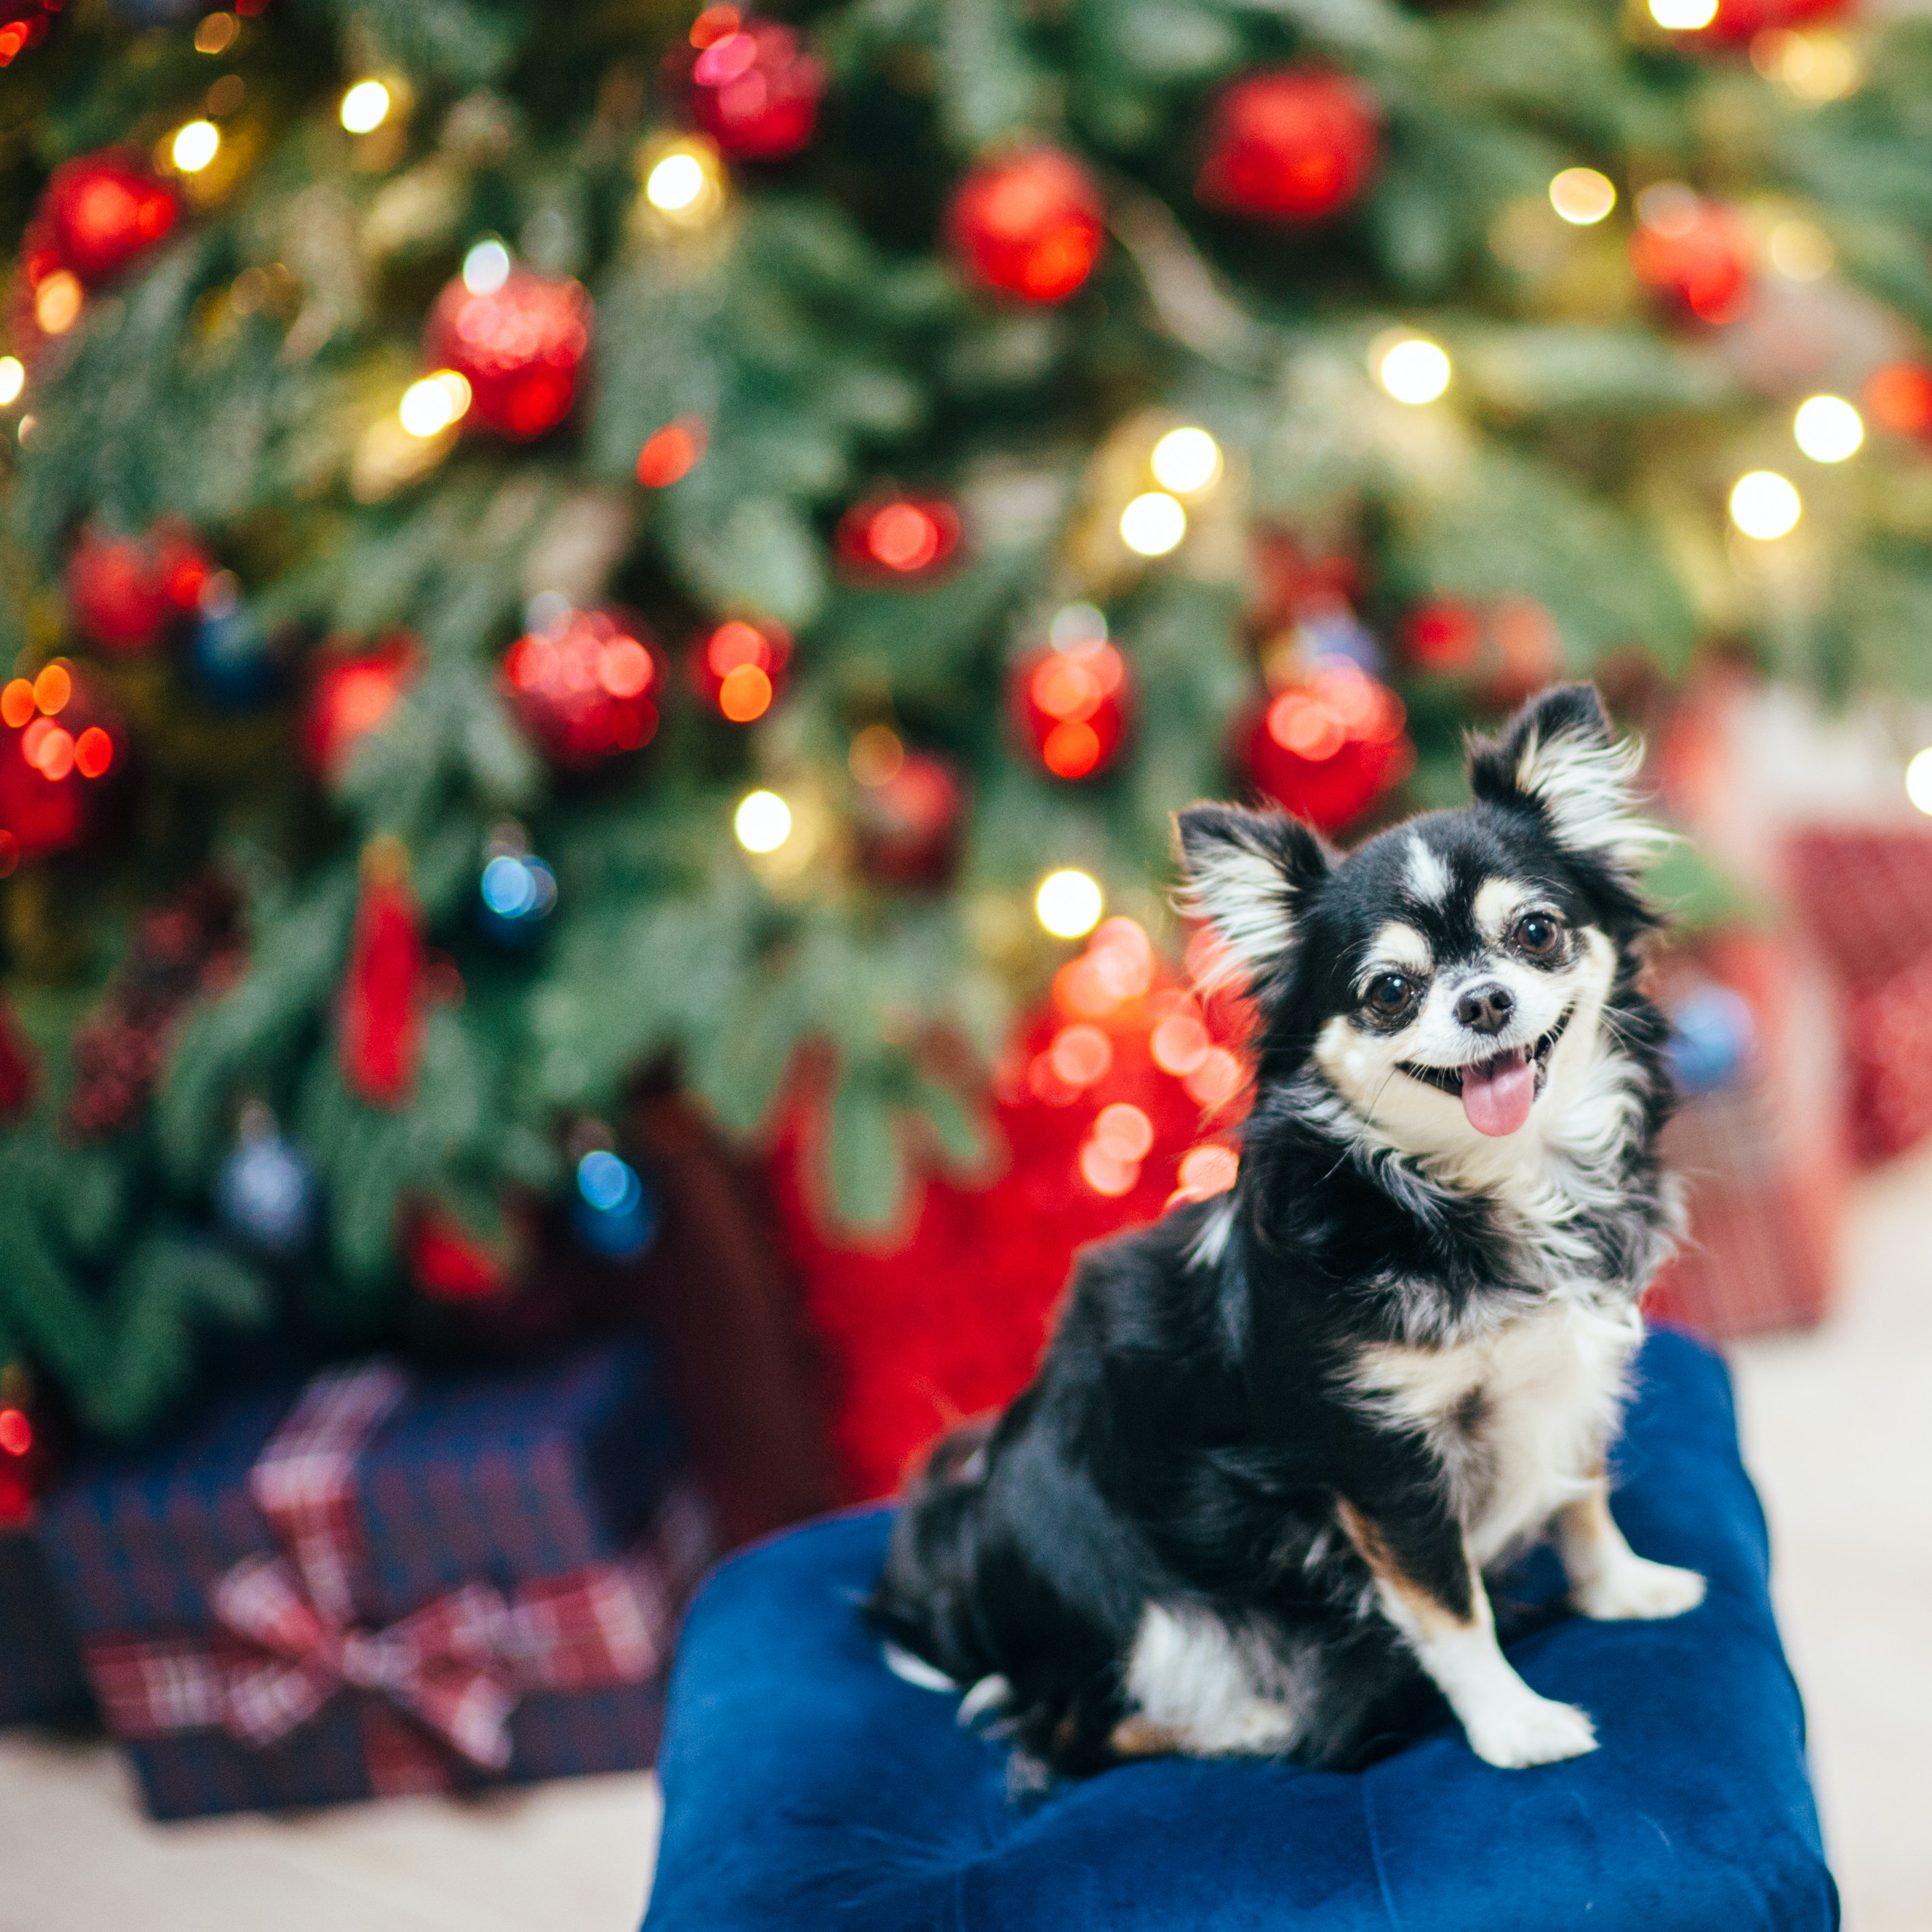 8 Pictures Of Dogs Christmas Trees To Wish You A Happy Howlidays